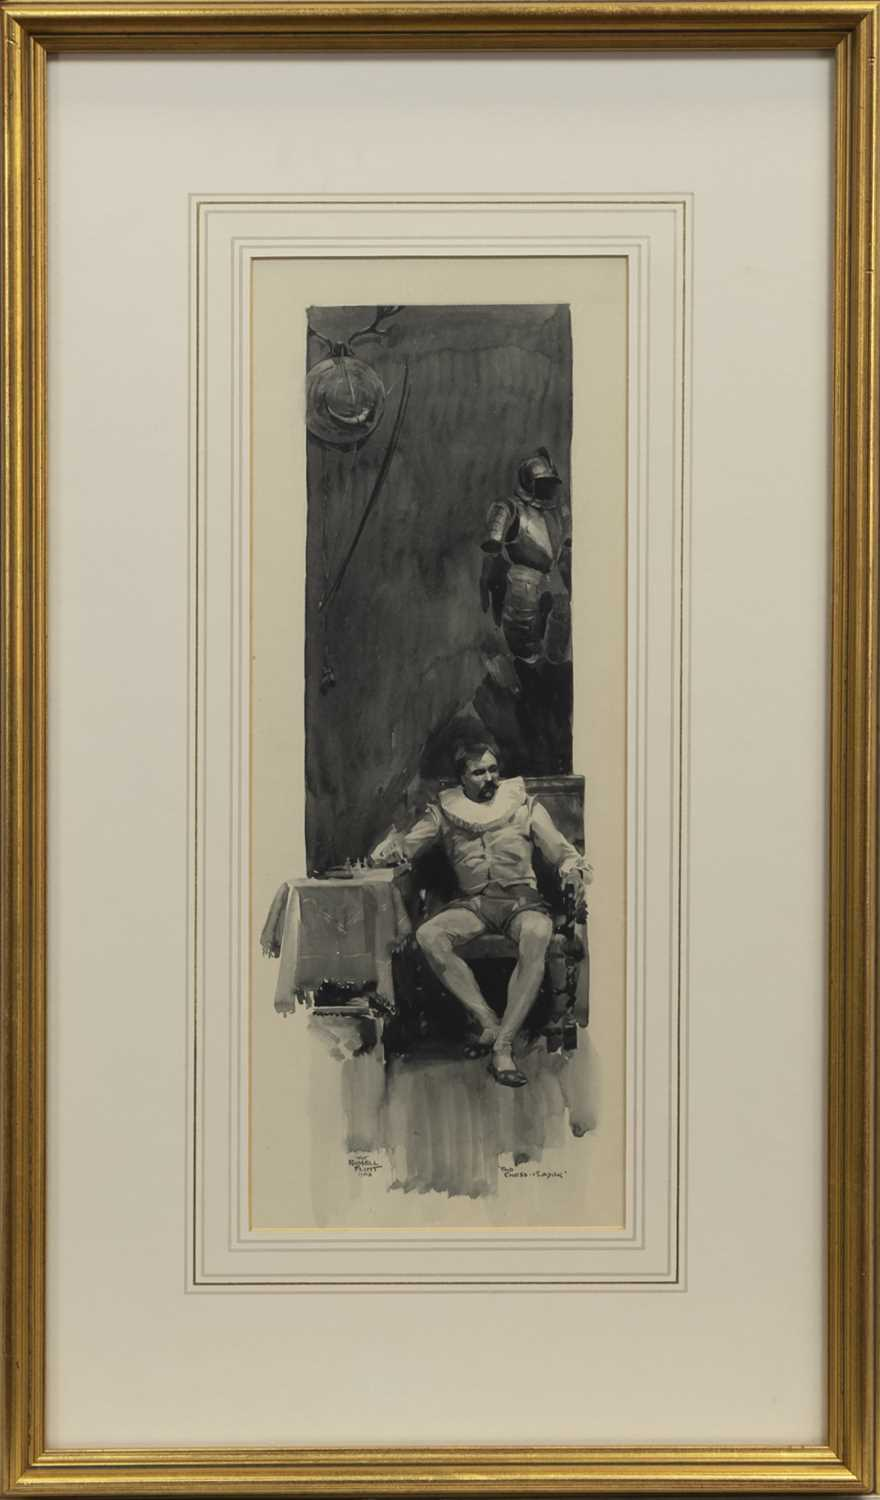 Lot 1 - THE CHESS PLAYER, AN EARLY WATERCOLOUR BY WILLIAM RUSSELL FLINT